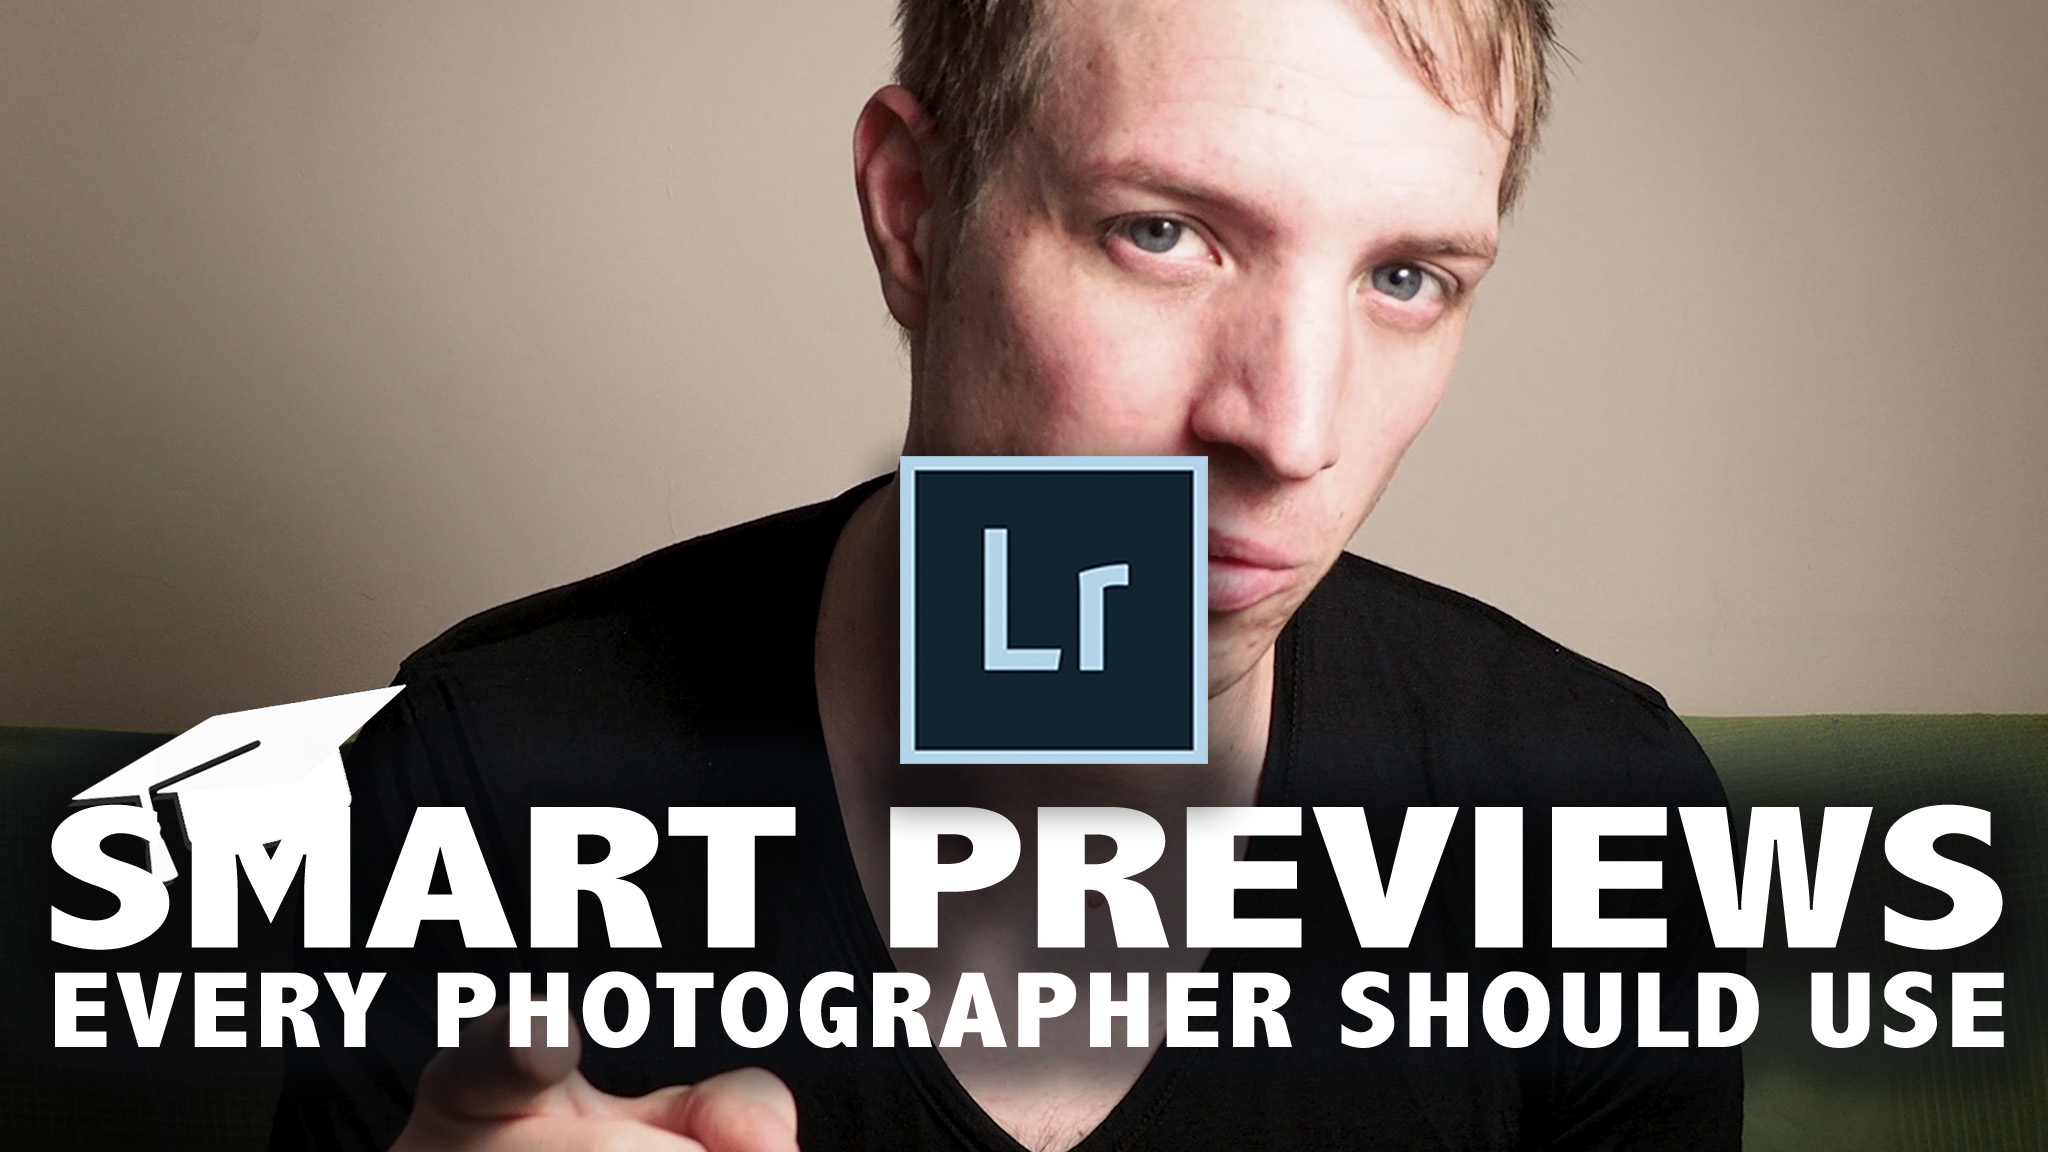 Smart Previews - Why every photographer should use them